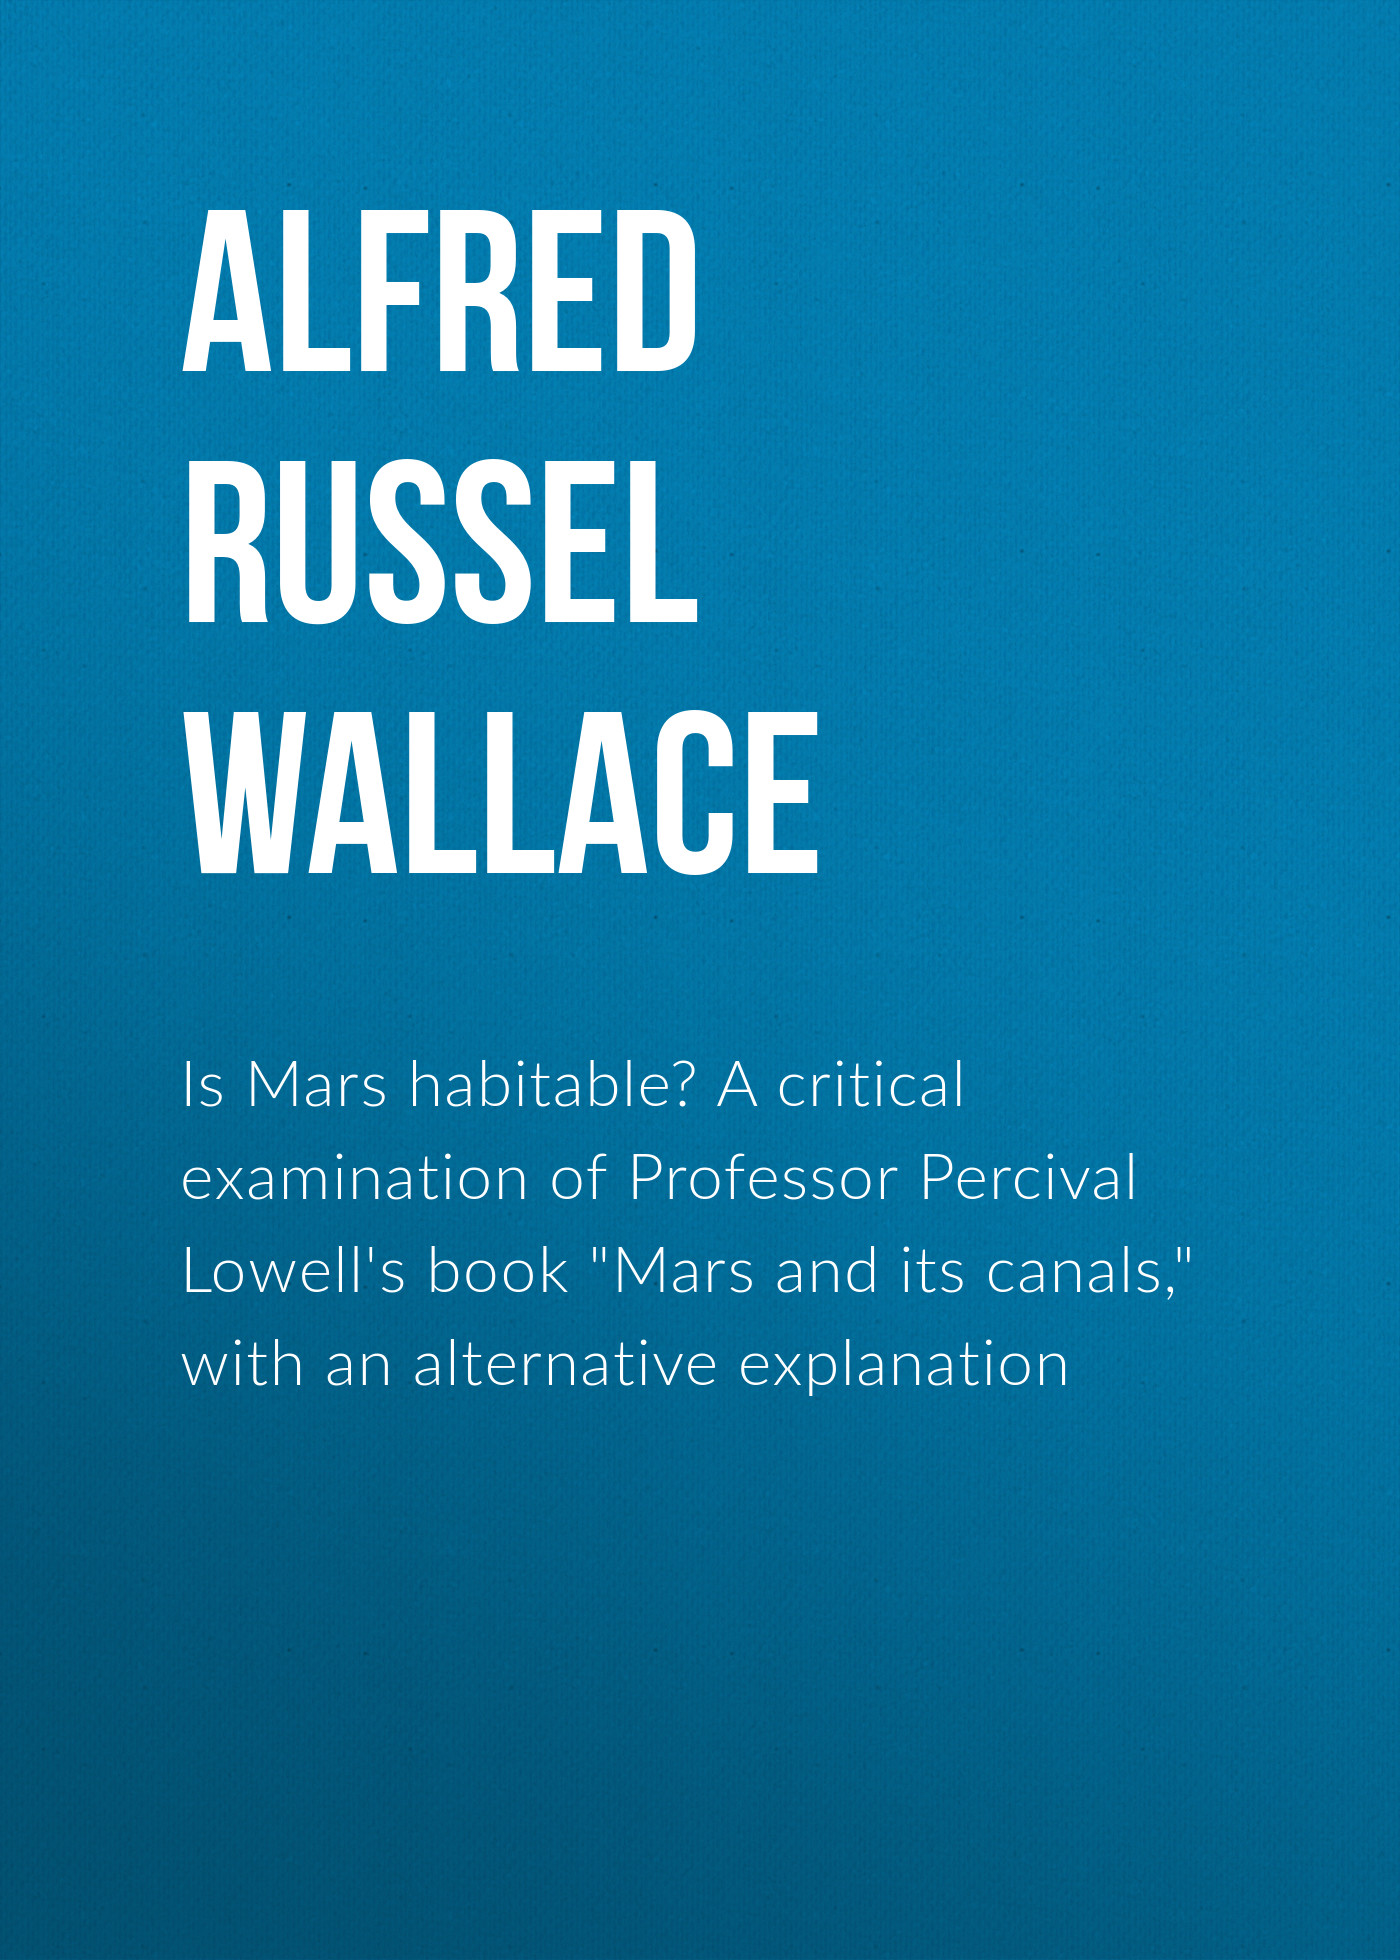 Alfred Russel Wallace Is Mars habitable? A critical examination of Professor Percival Lowell's book Mars and its canals, with an alternative explanation